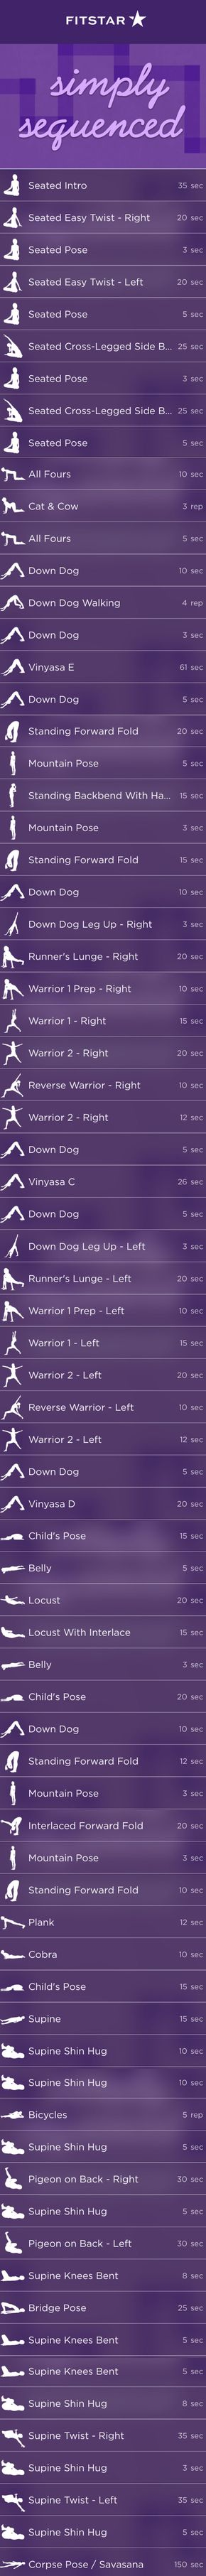 Wake Up or Wind Down with this FitStar Yoga Workout | Fitbit Blog